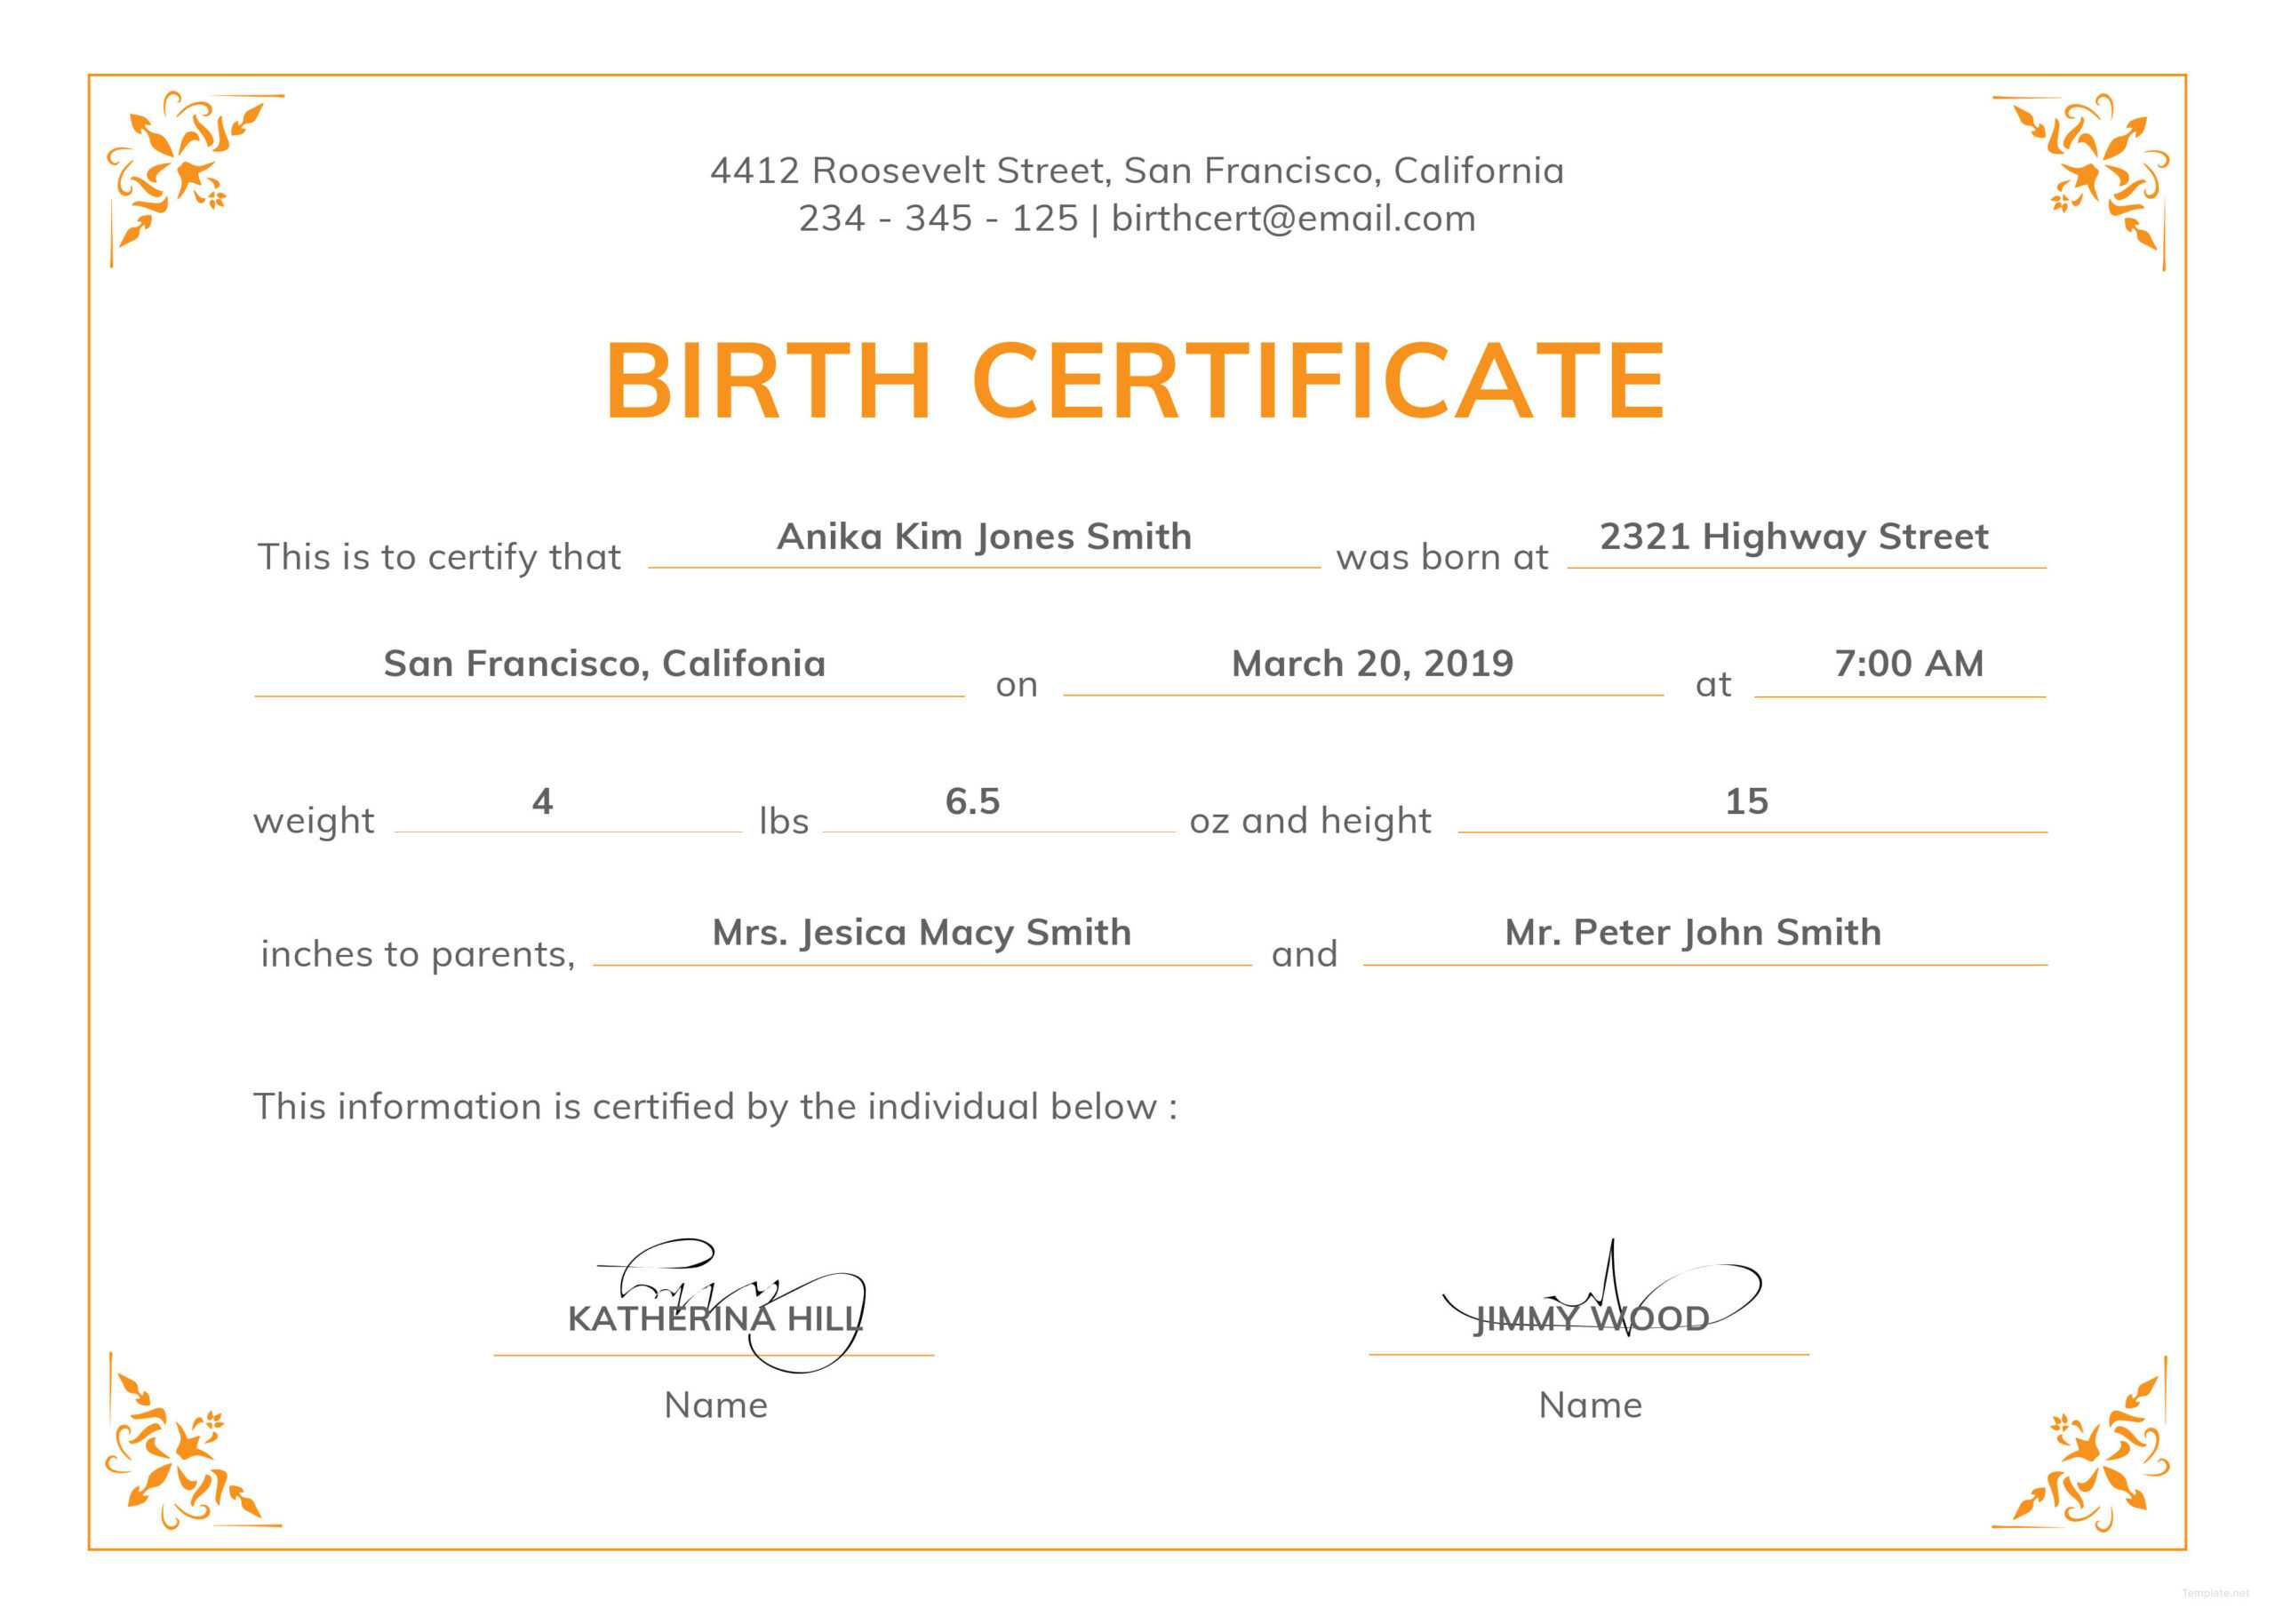 005 Official Birth Certificateplate Or Full Uk With Texas Regarding Birth Certificate Template Uk